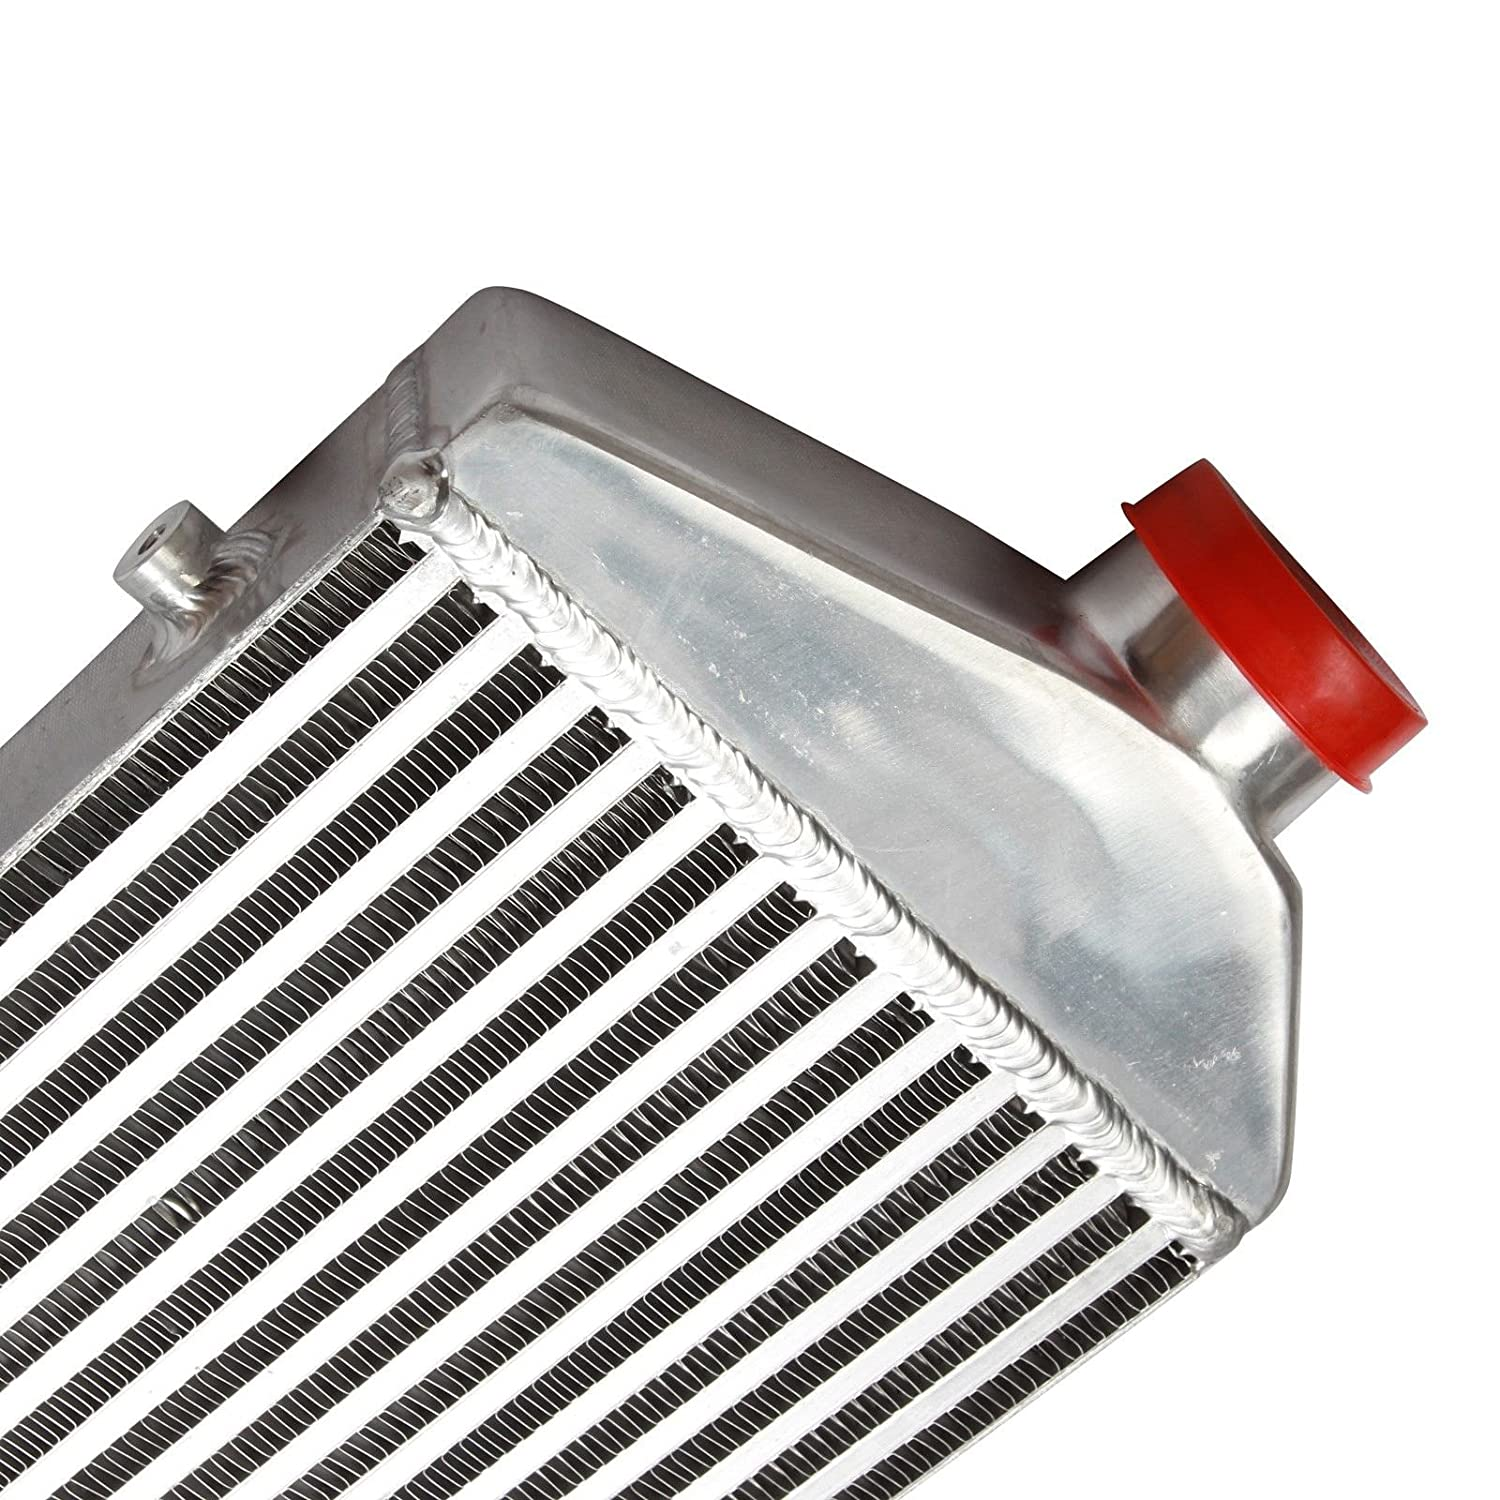 yjracing Fit For 1998-2001 Audi A4 S4 B5 1.8T Front Mount Intercooler Kits Fmic Bolt On